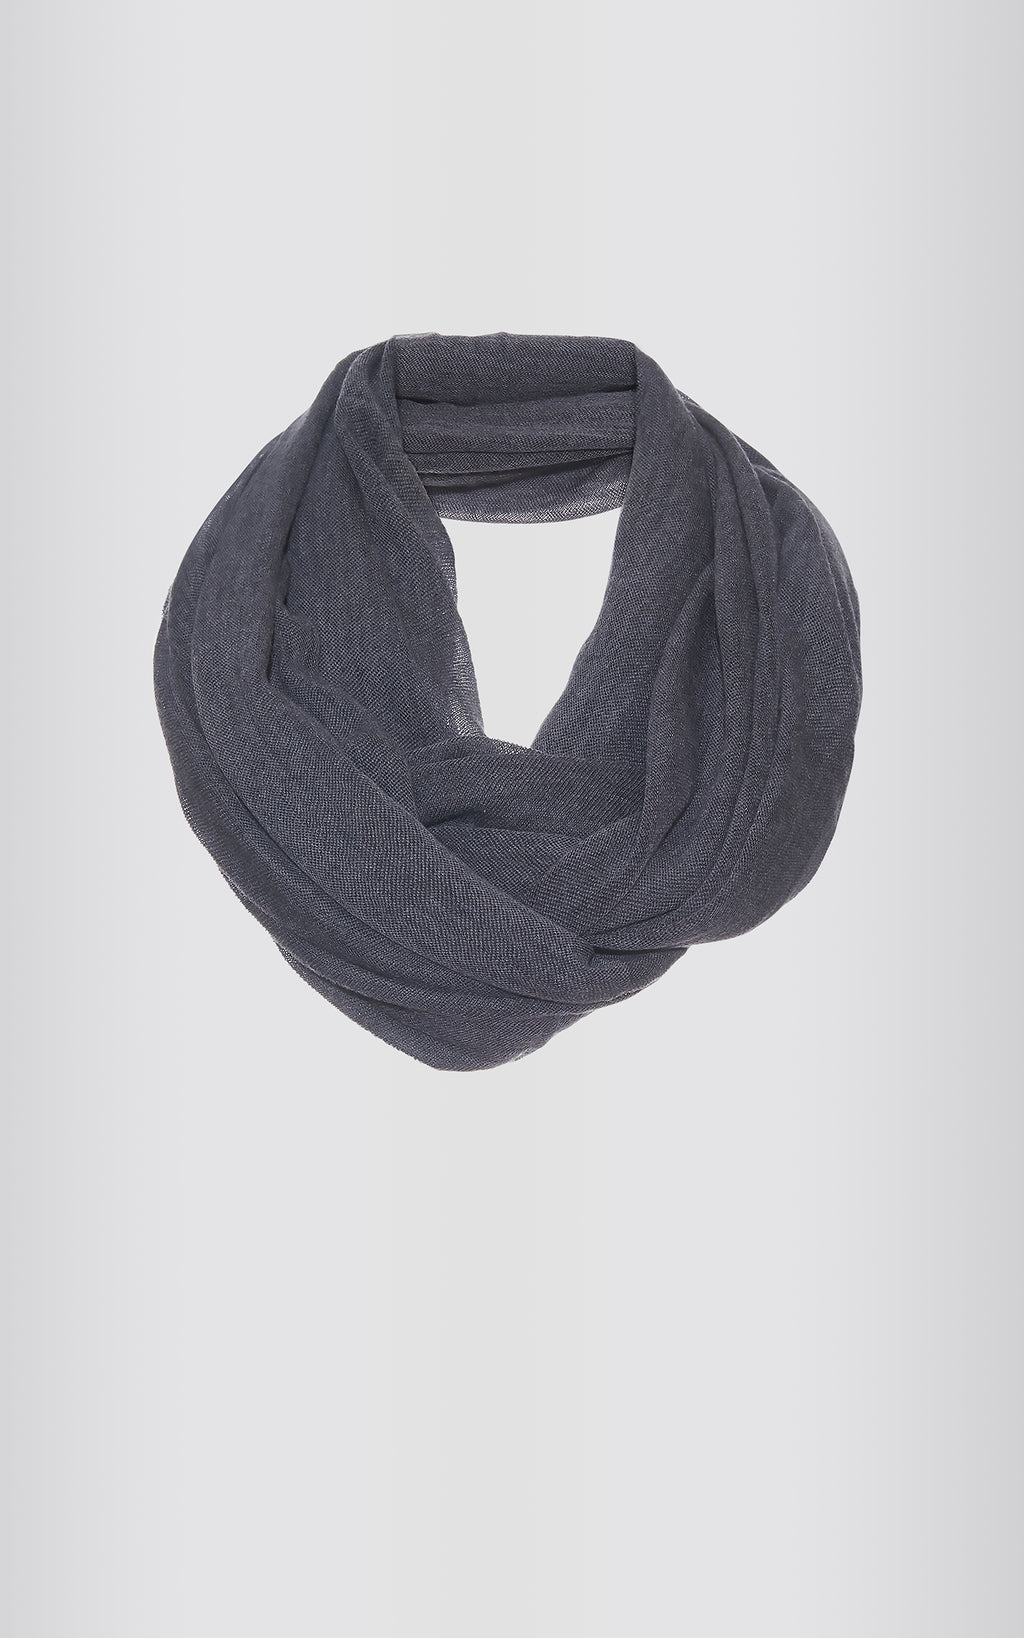 CIRCLE SCARF - CHARCOAL